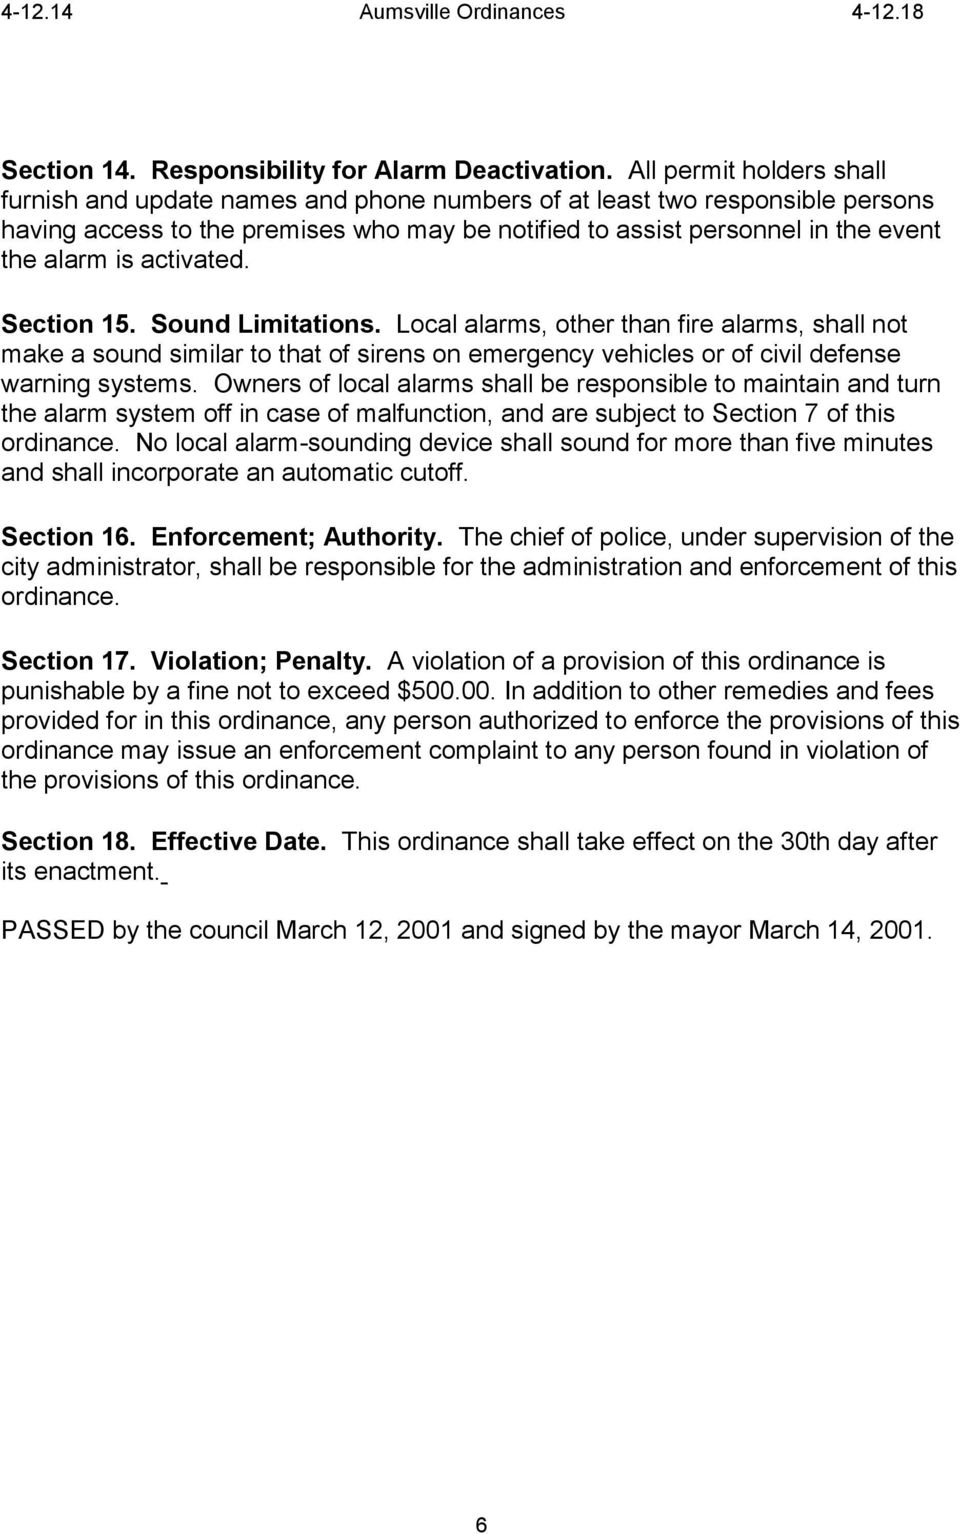 activated. Section 15. Sound Limitations. Local alarms, other than fire alarms, shall not make a sound similar to that of sirens on emergency vehicles or of civil defense warning systems.